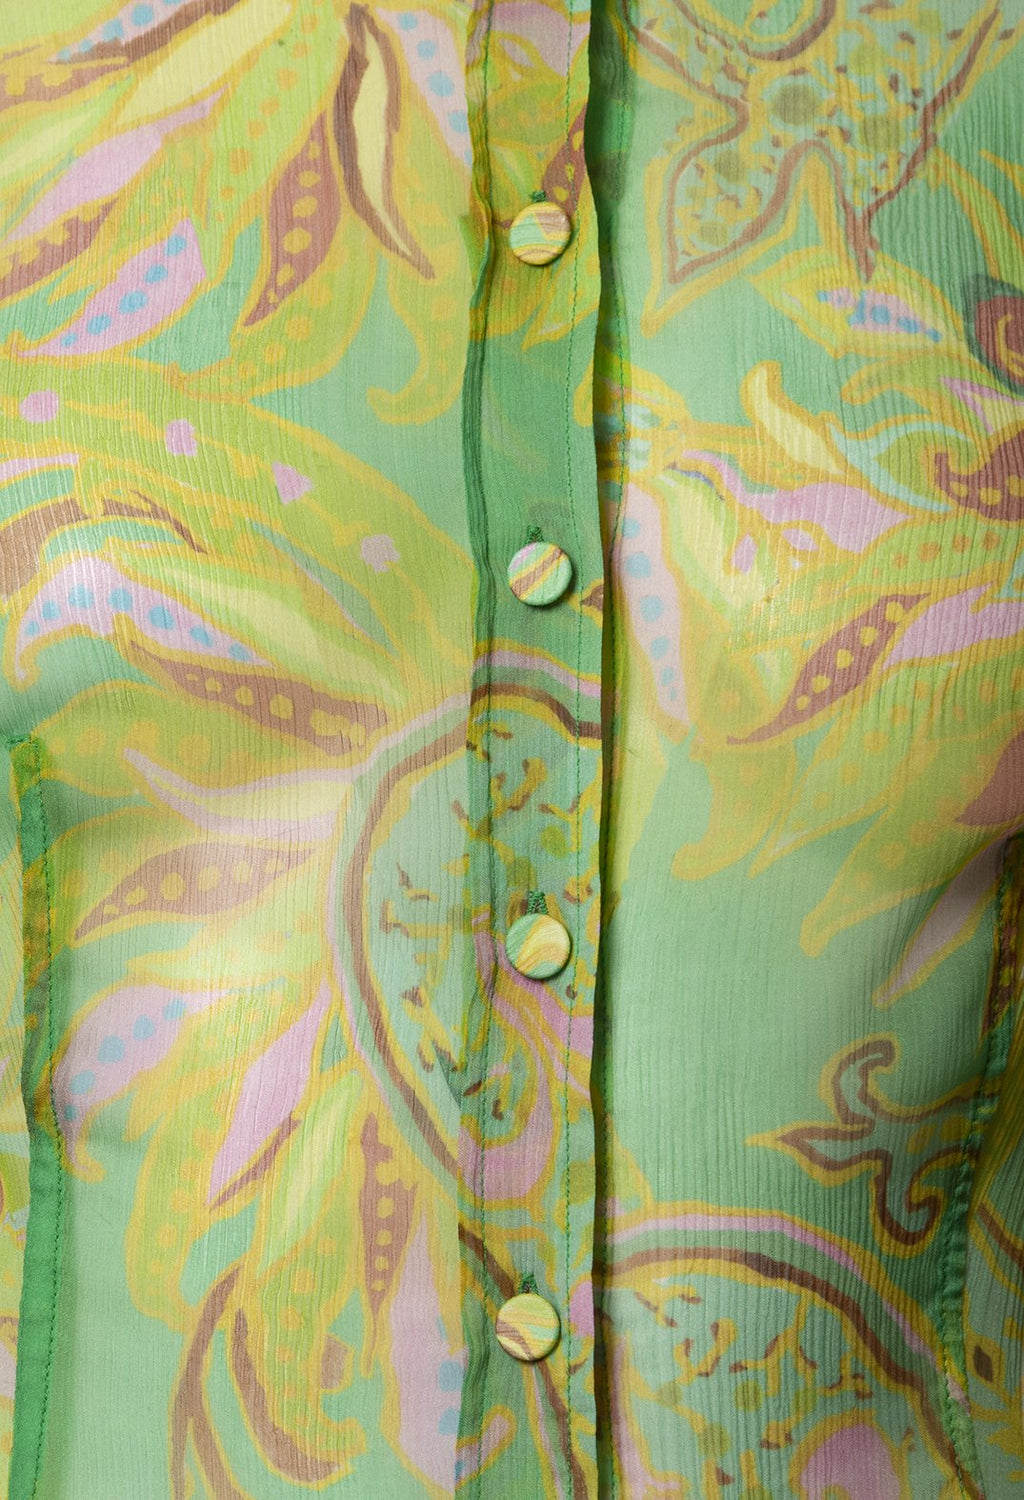 Carnival Shirt in Verde / Giallo / Rosa